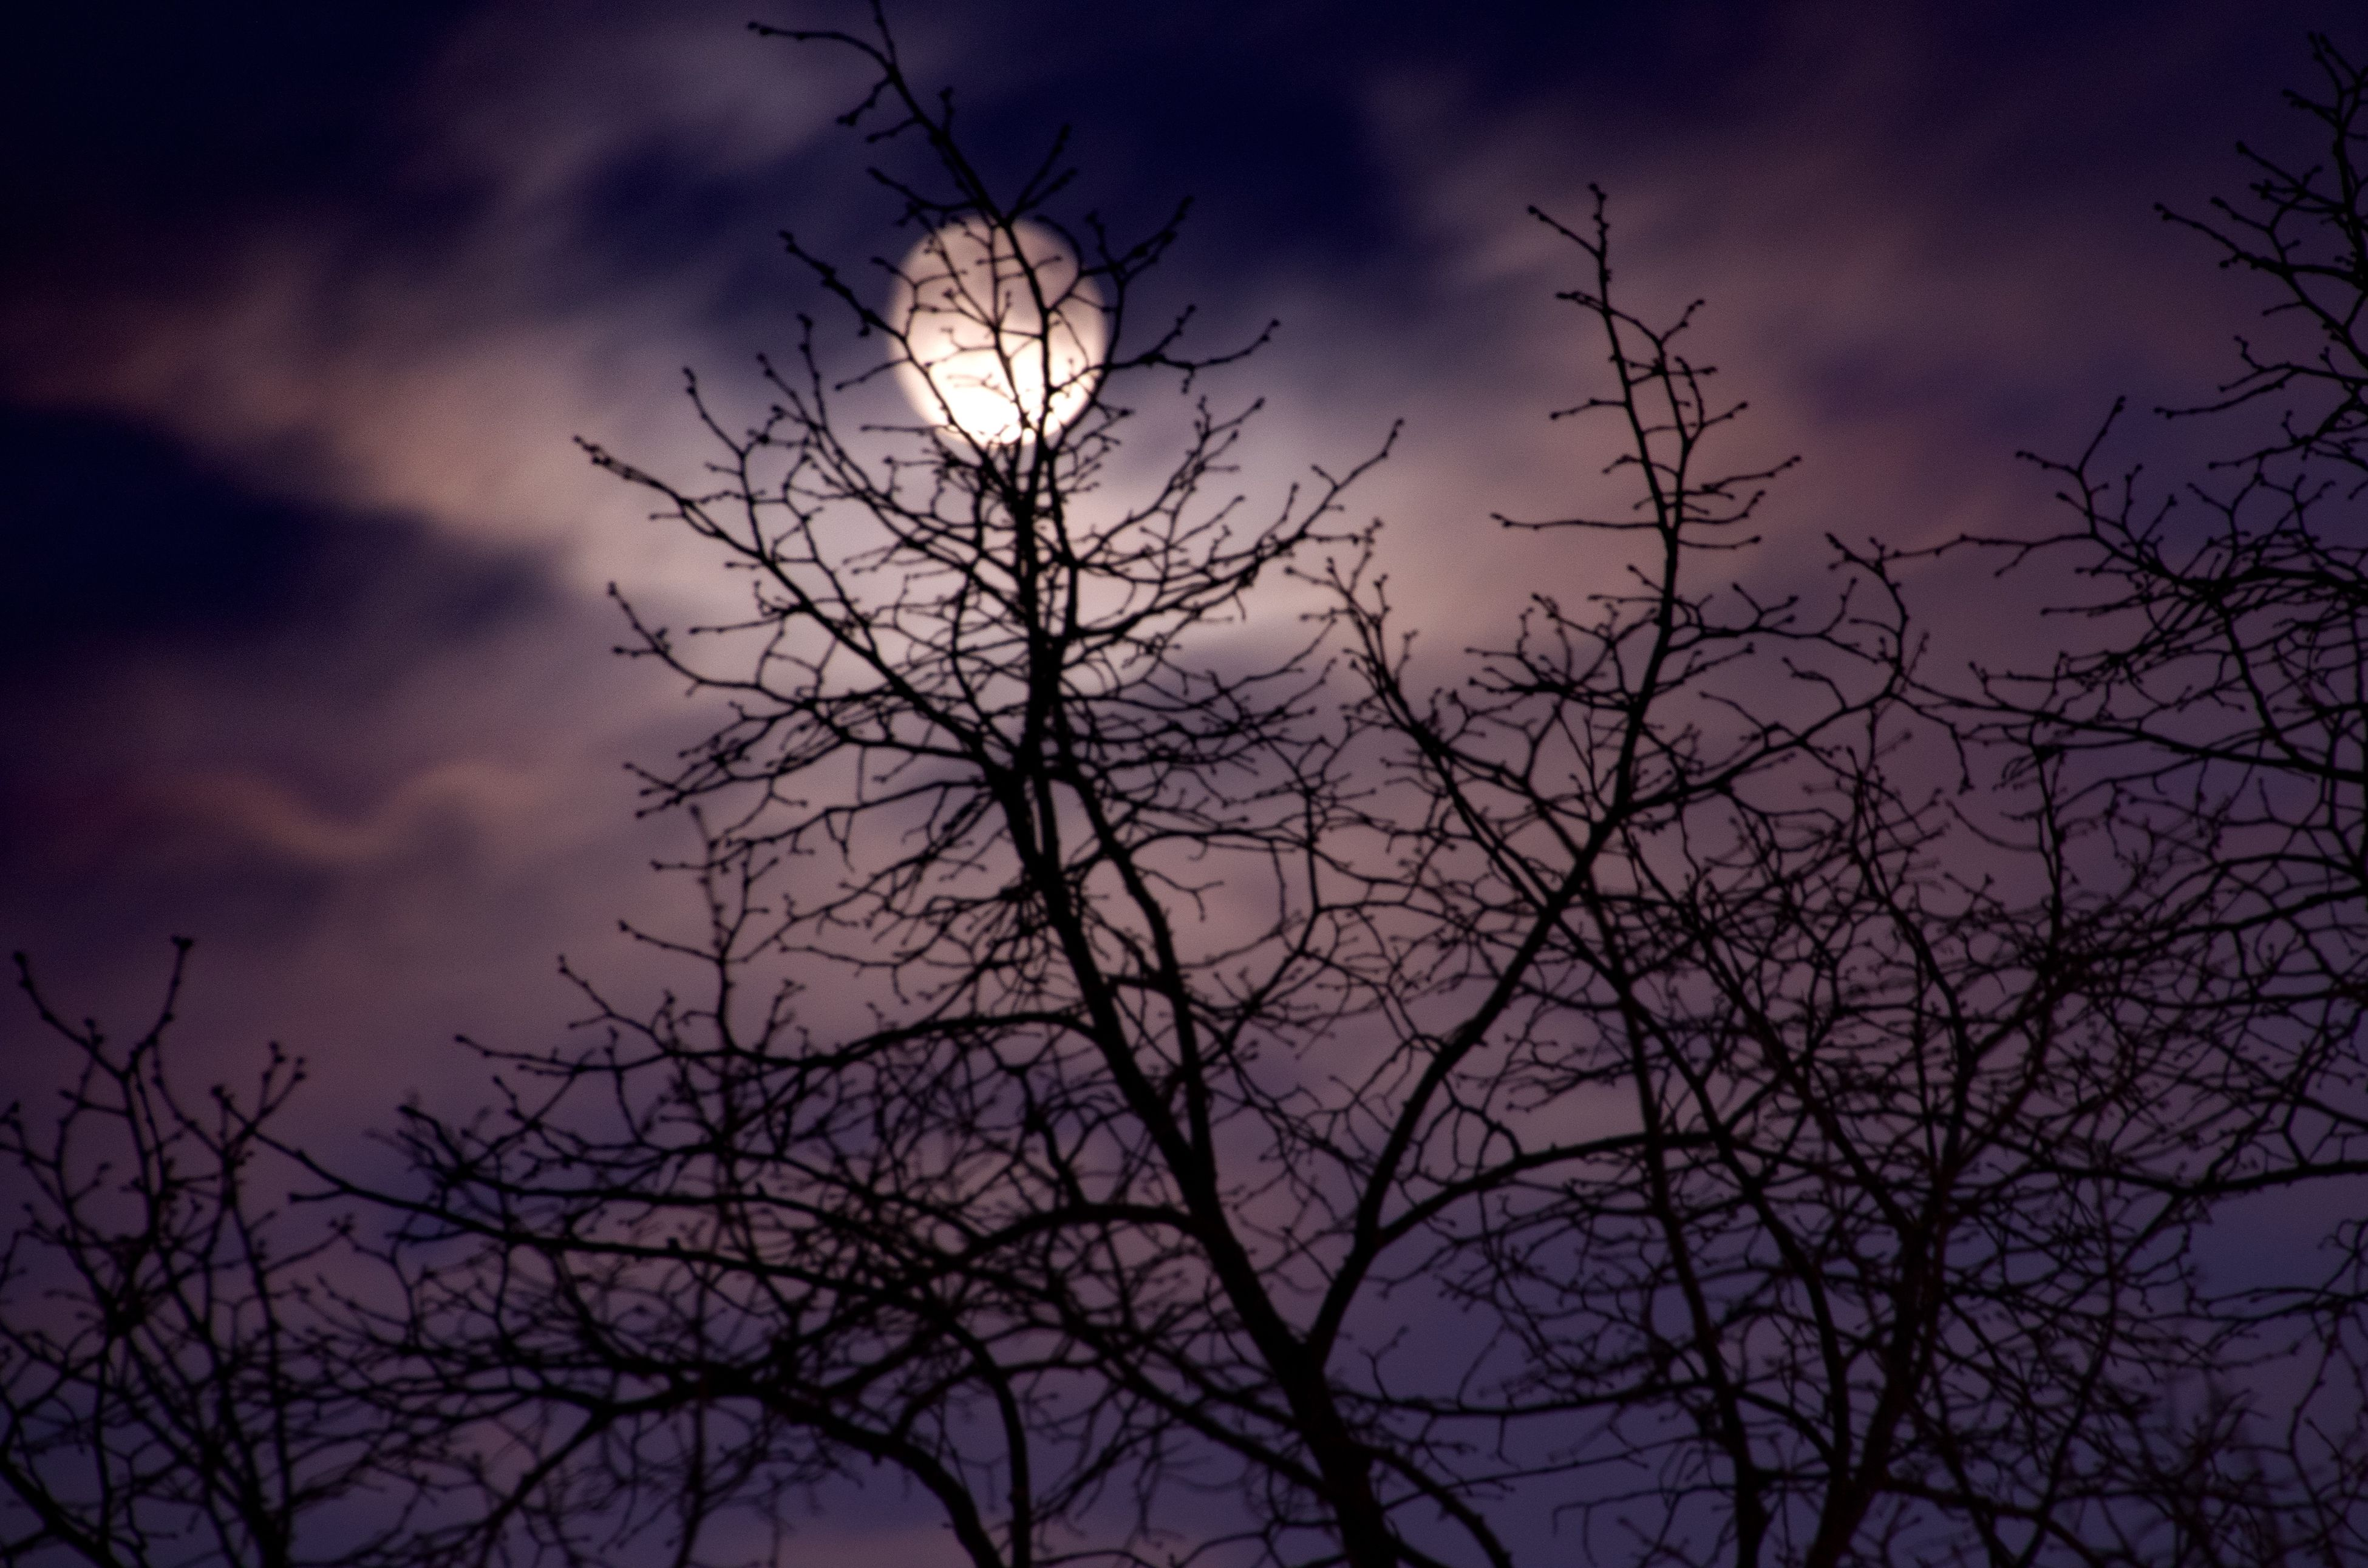 bare tree, branch, low angle view, tree, silhouette, sky, tranquility, nature, beauty in nature, cloud - sky, scenics, dusk, tranquil scene, outdoors, no people, dead plant, dried plant, sunset, cloudy, growth